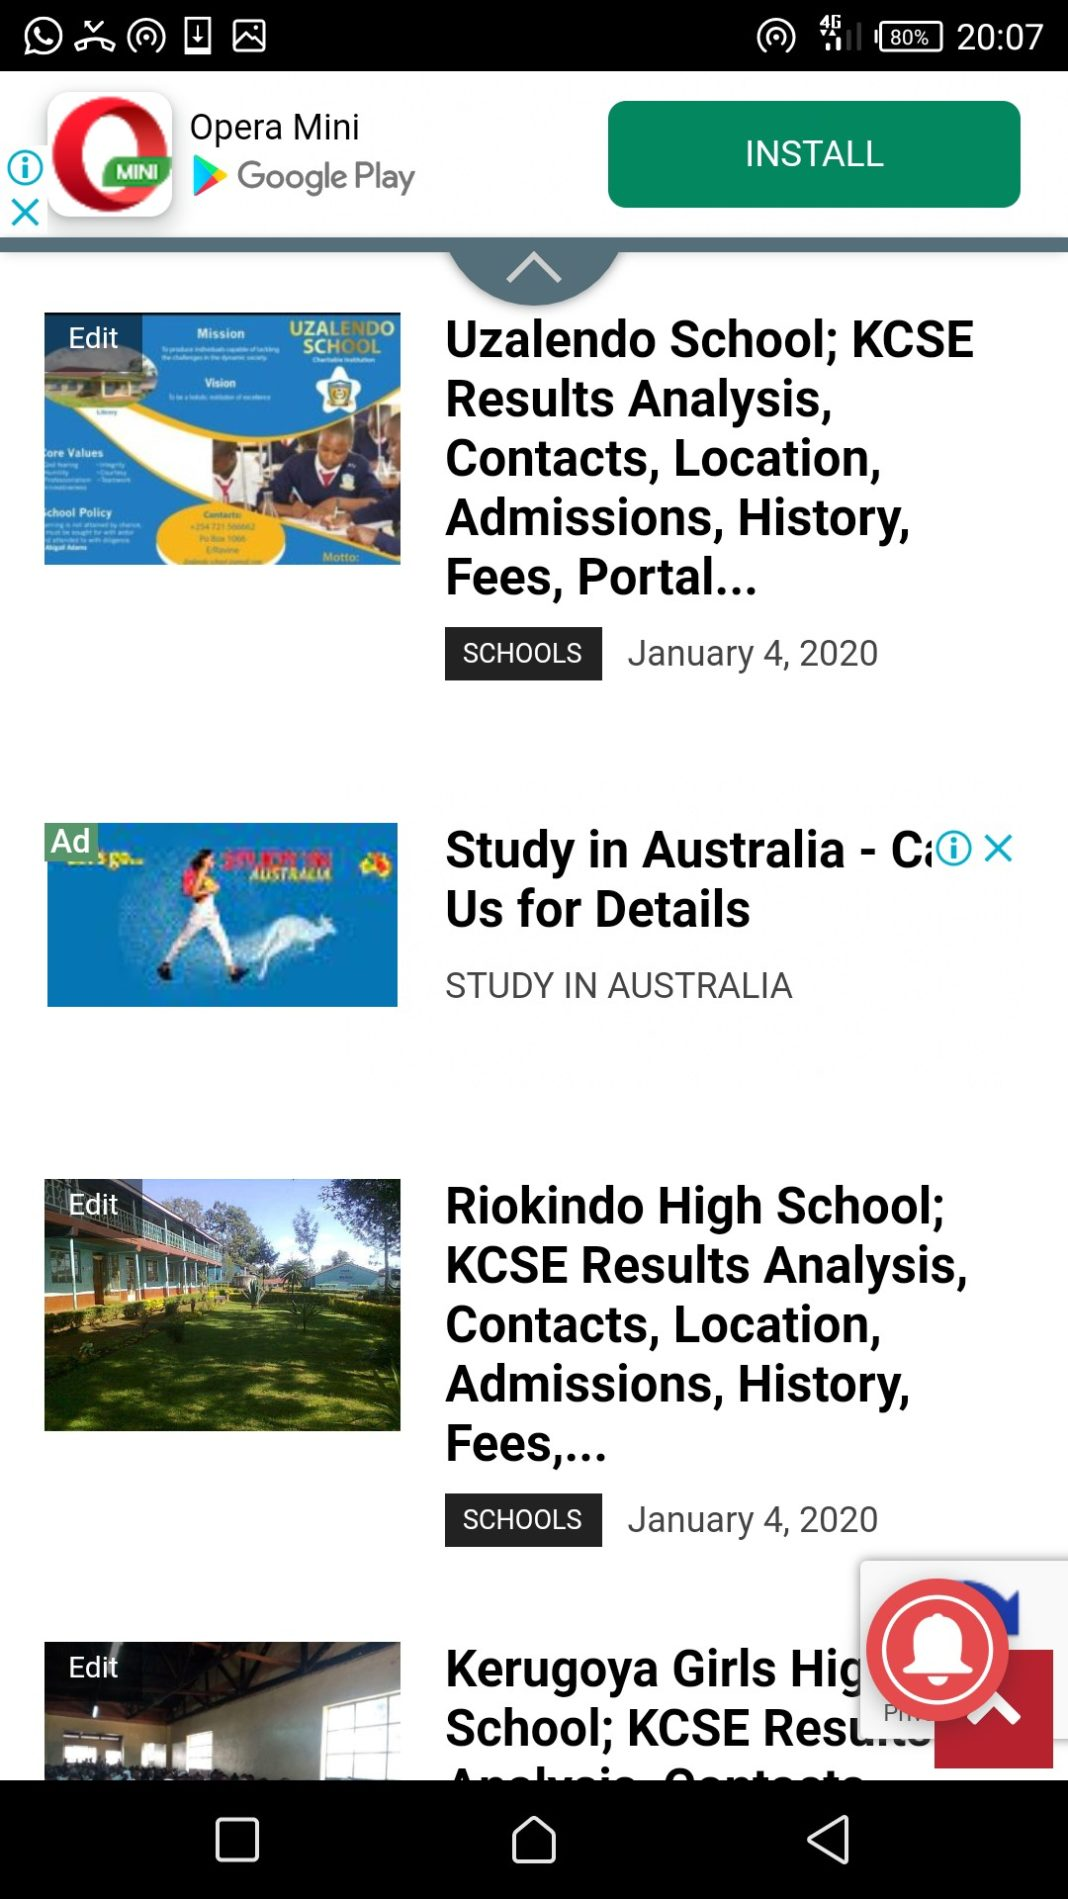 Some of the featured schools.